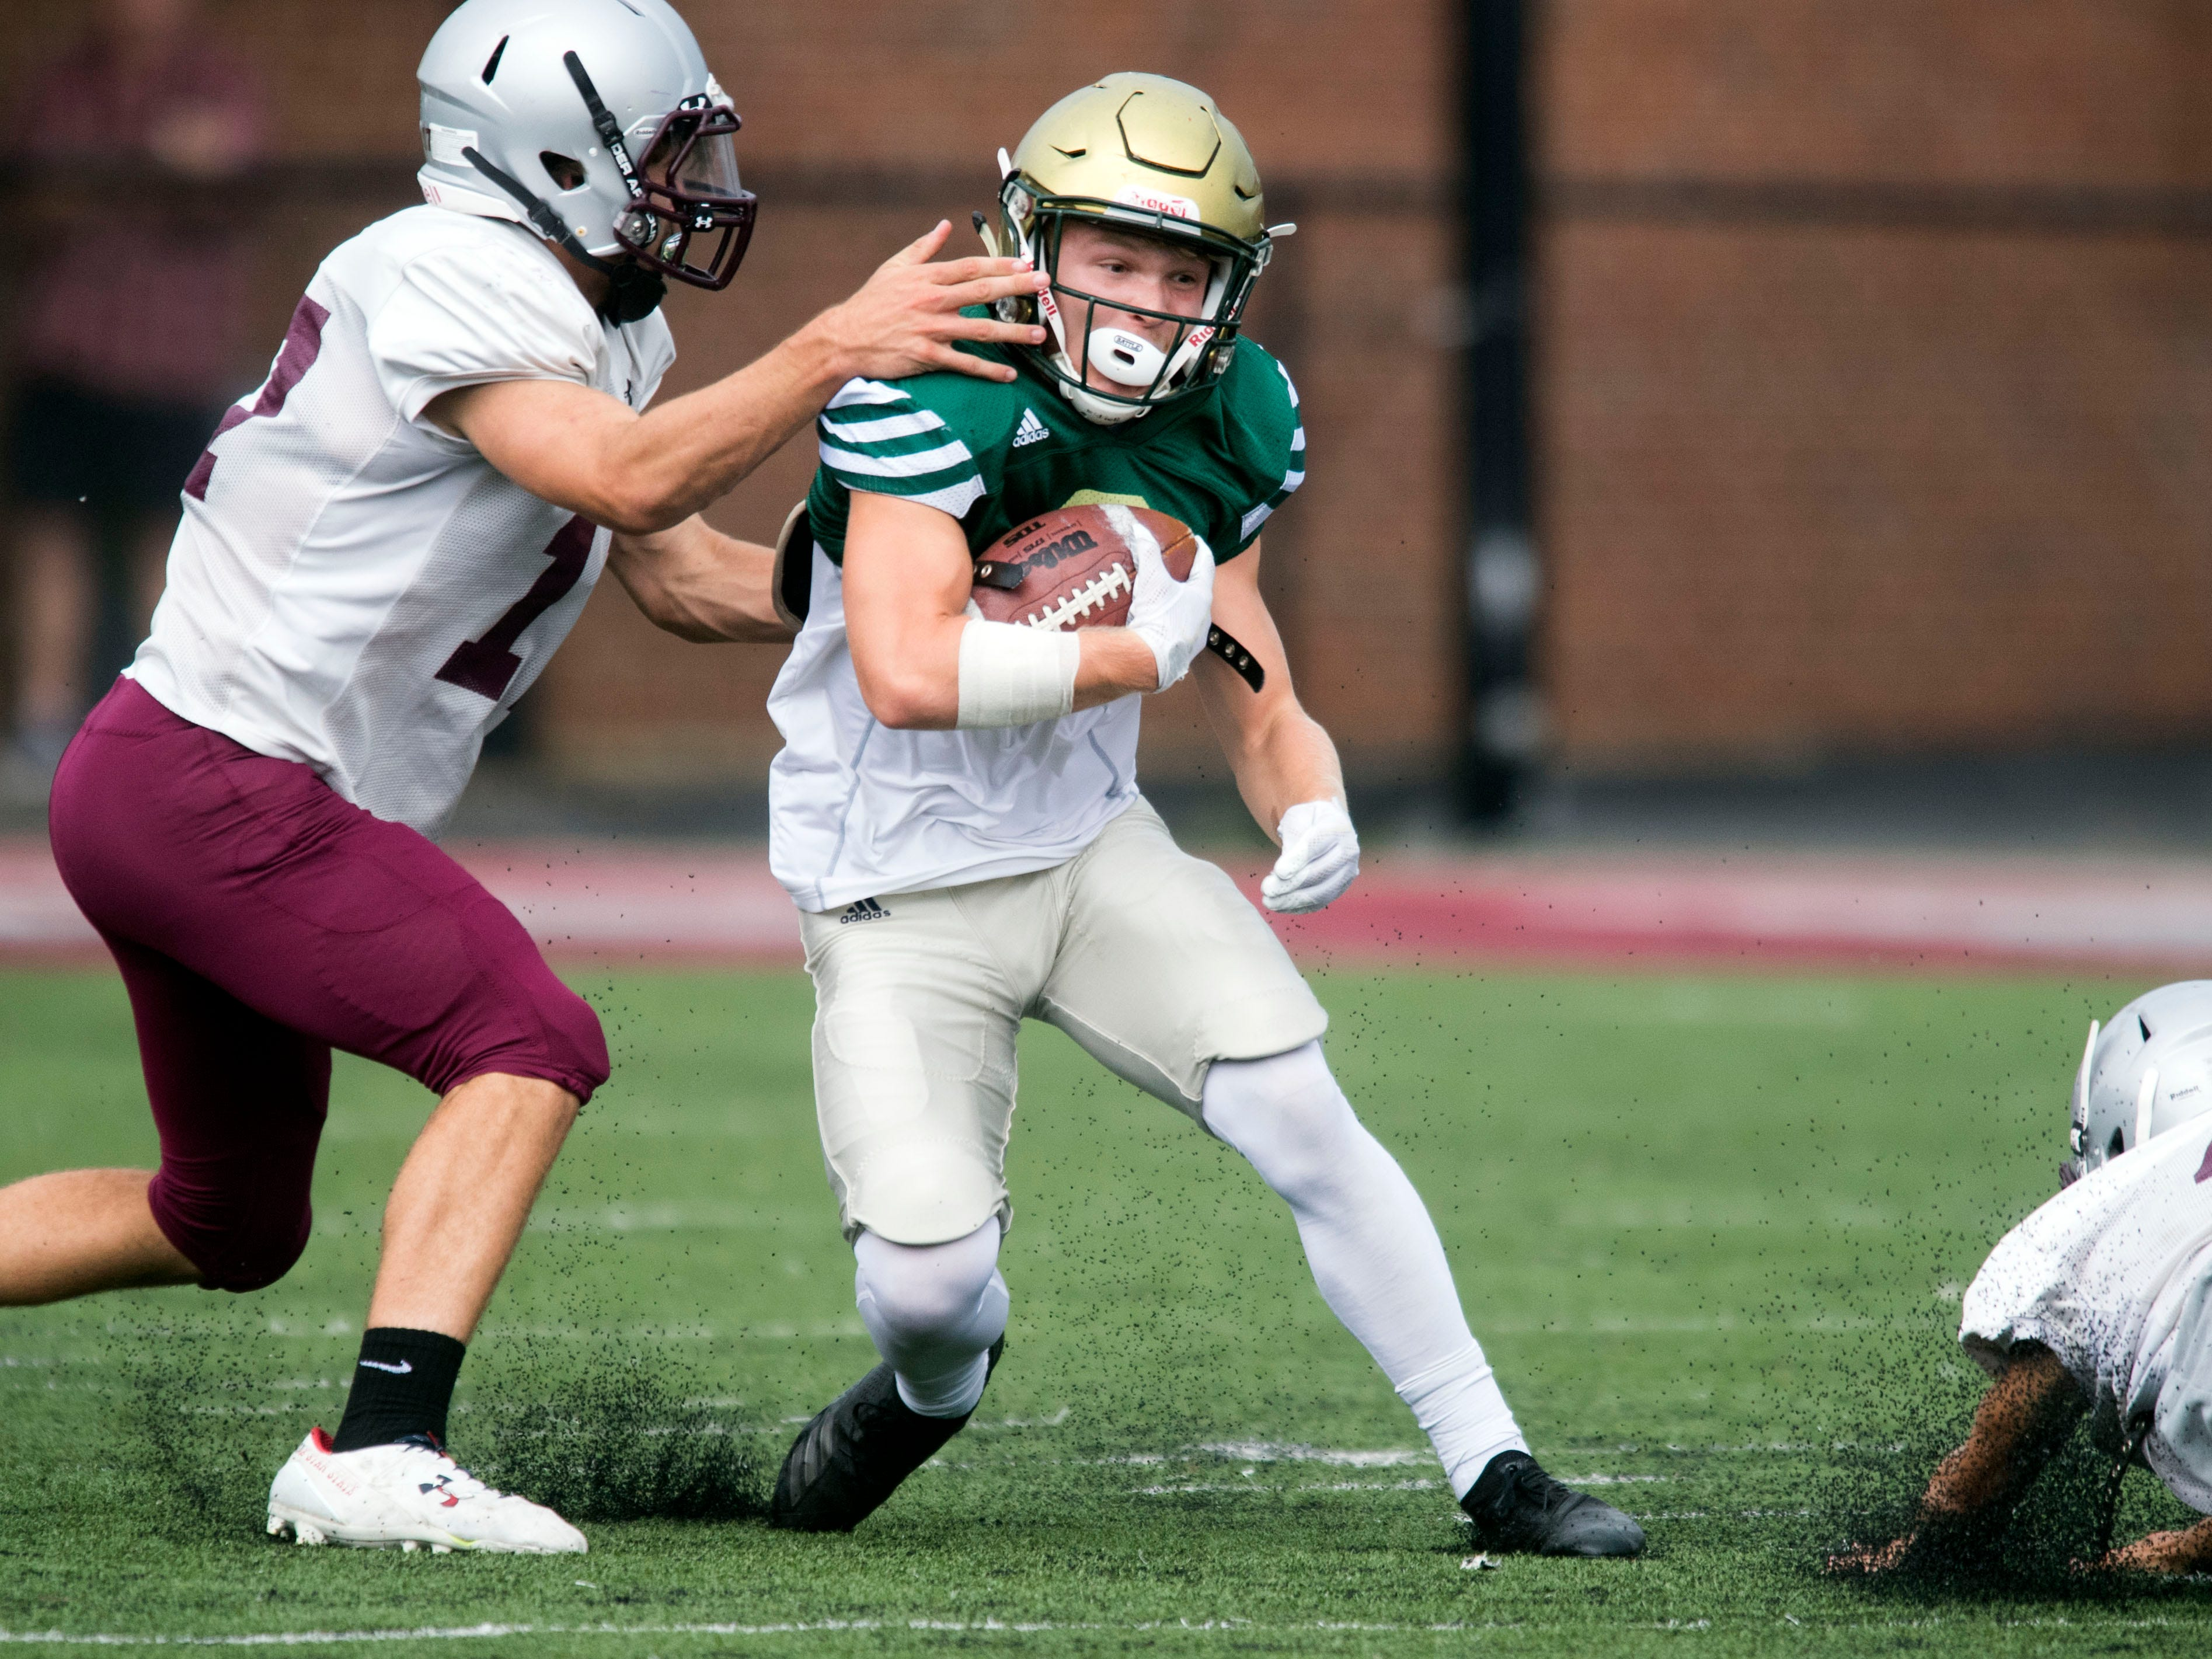 Catholic's Taylor Shannon (2) is grabbed by Alcoa's Adam Mathews (17) during a football scrimmage on Tuesday, July 31, 2018.